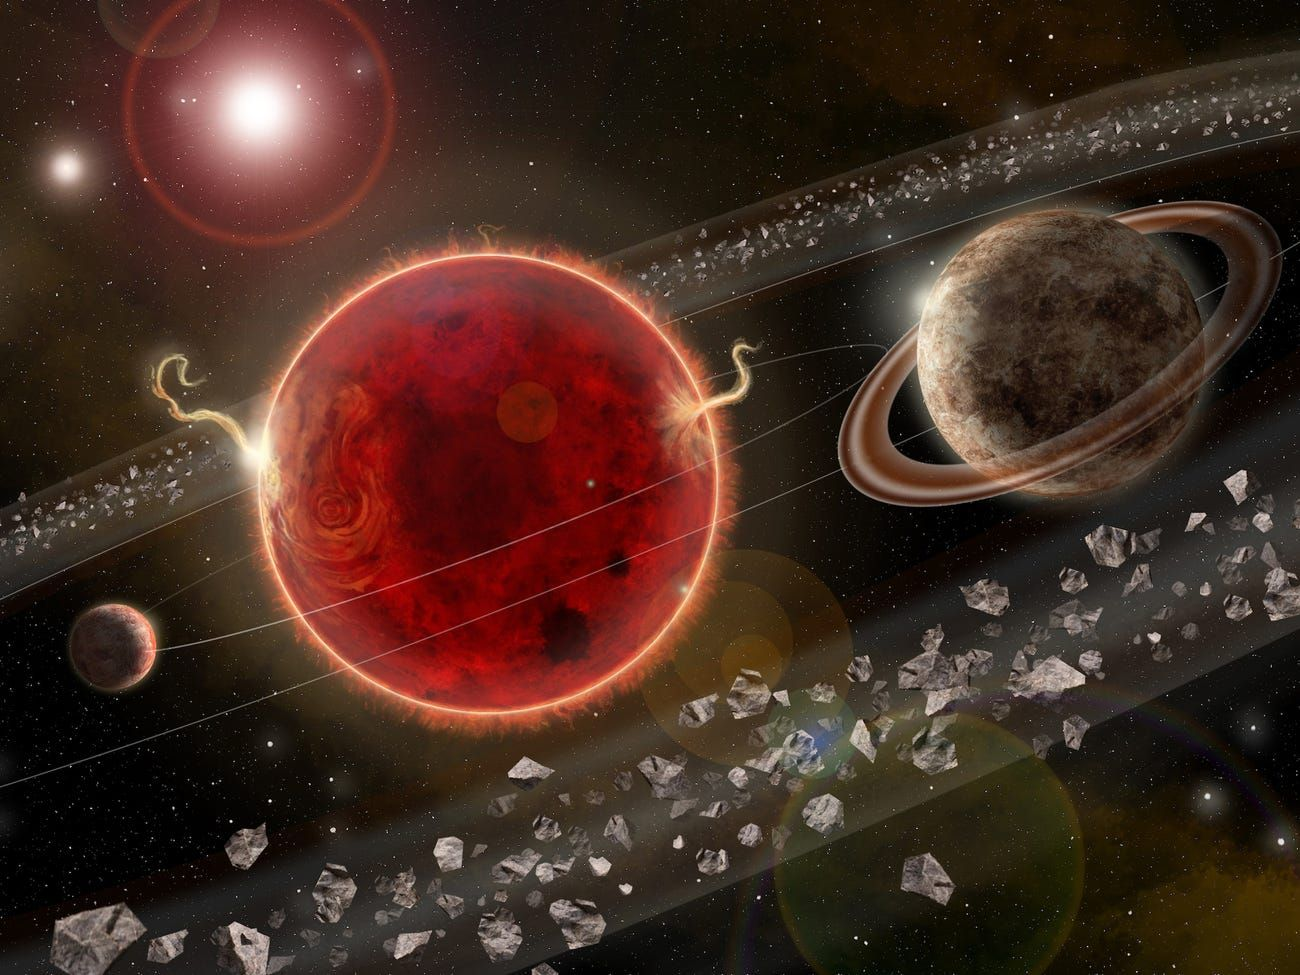 Is There a Hidden 'Super-Earth' Exoplanet Orbiting Our Closest Stellar Neighbor?